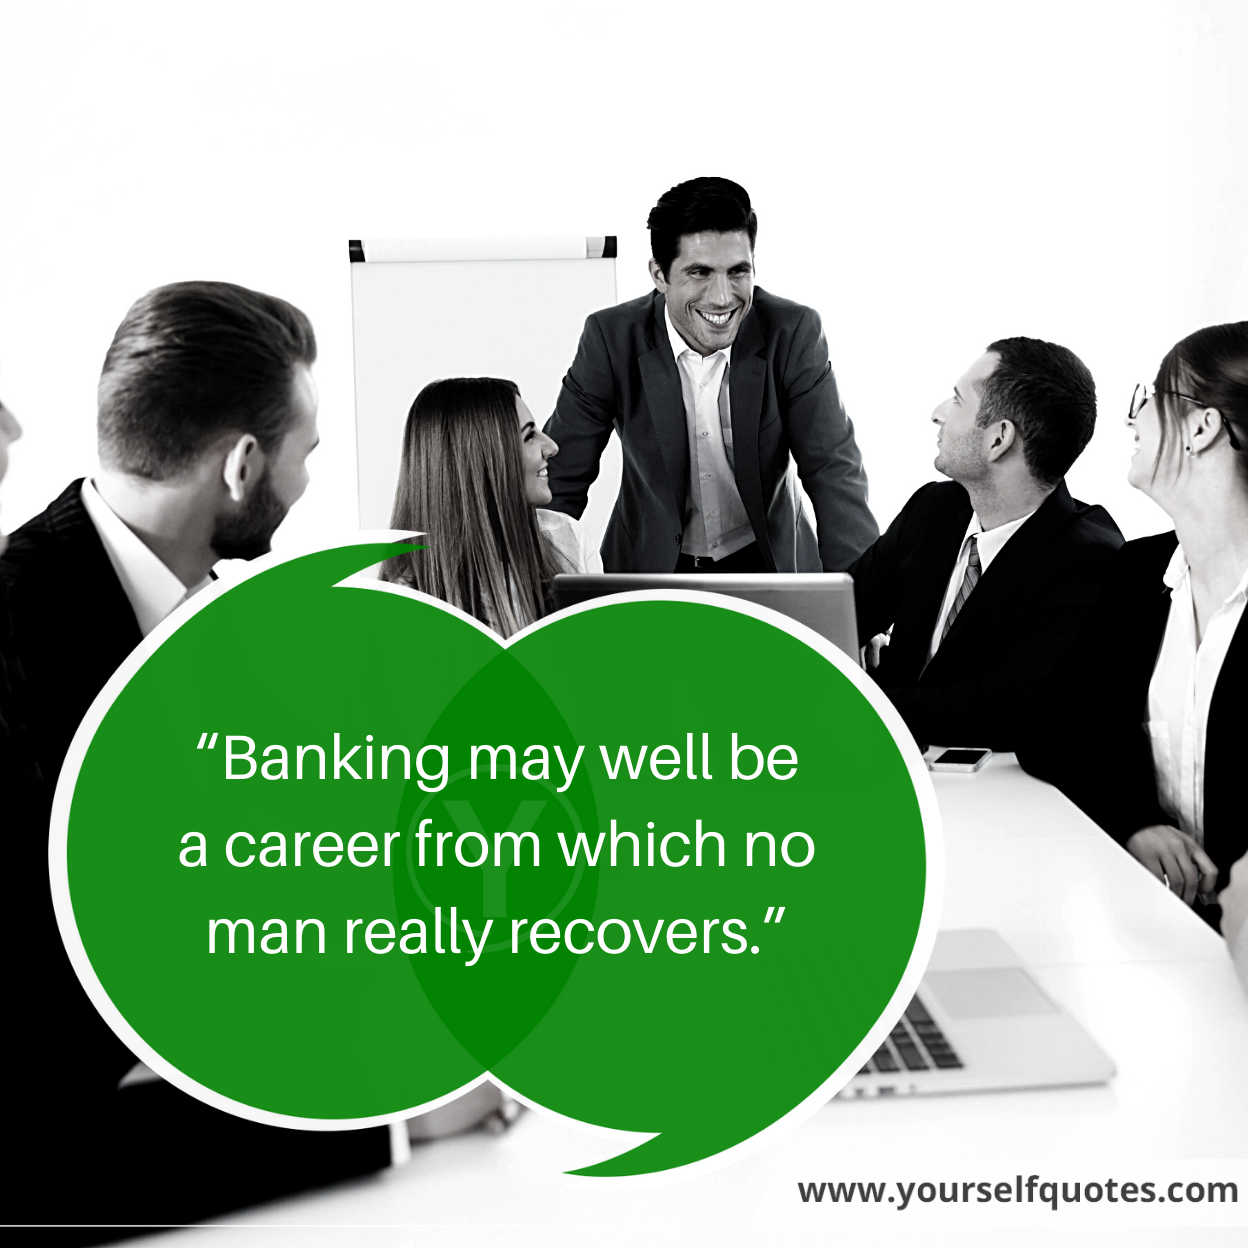 Quotes on Banking